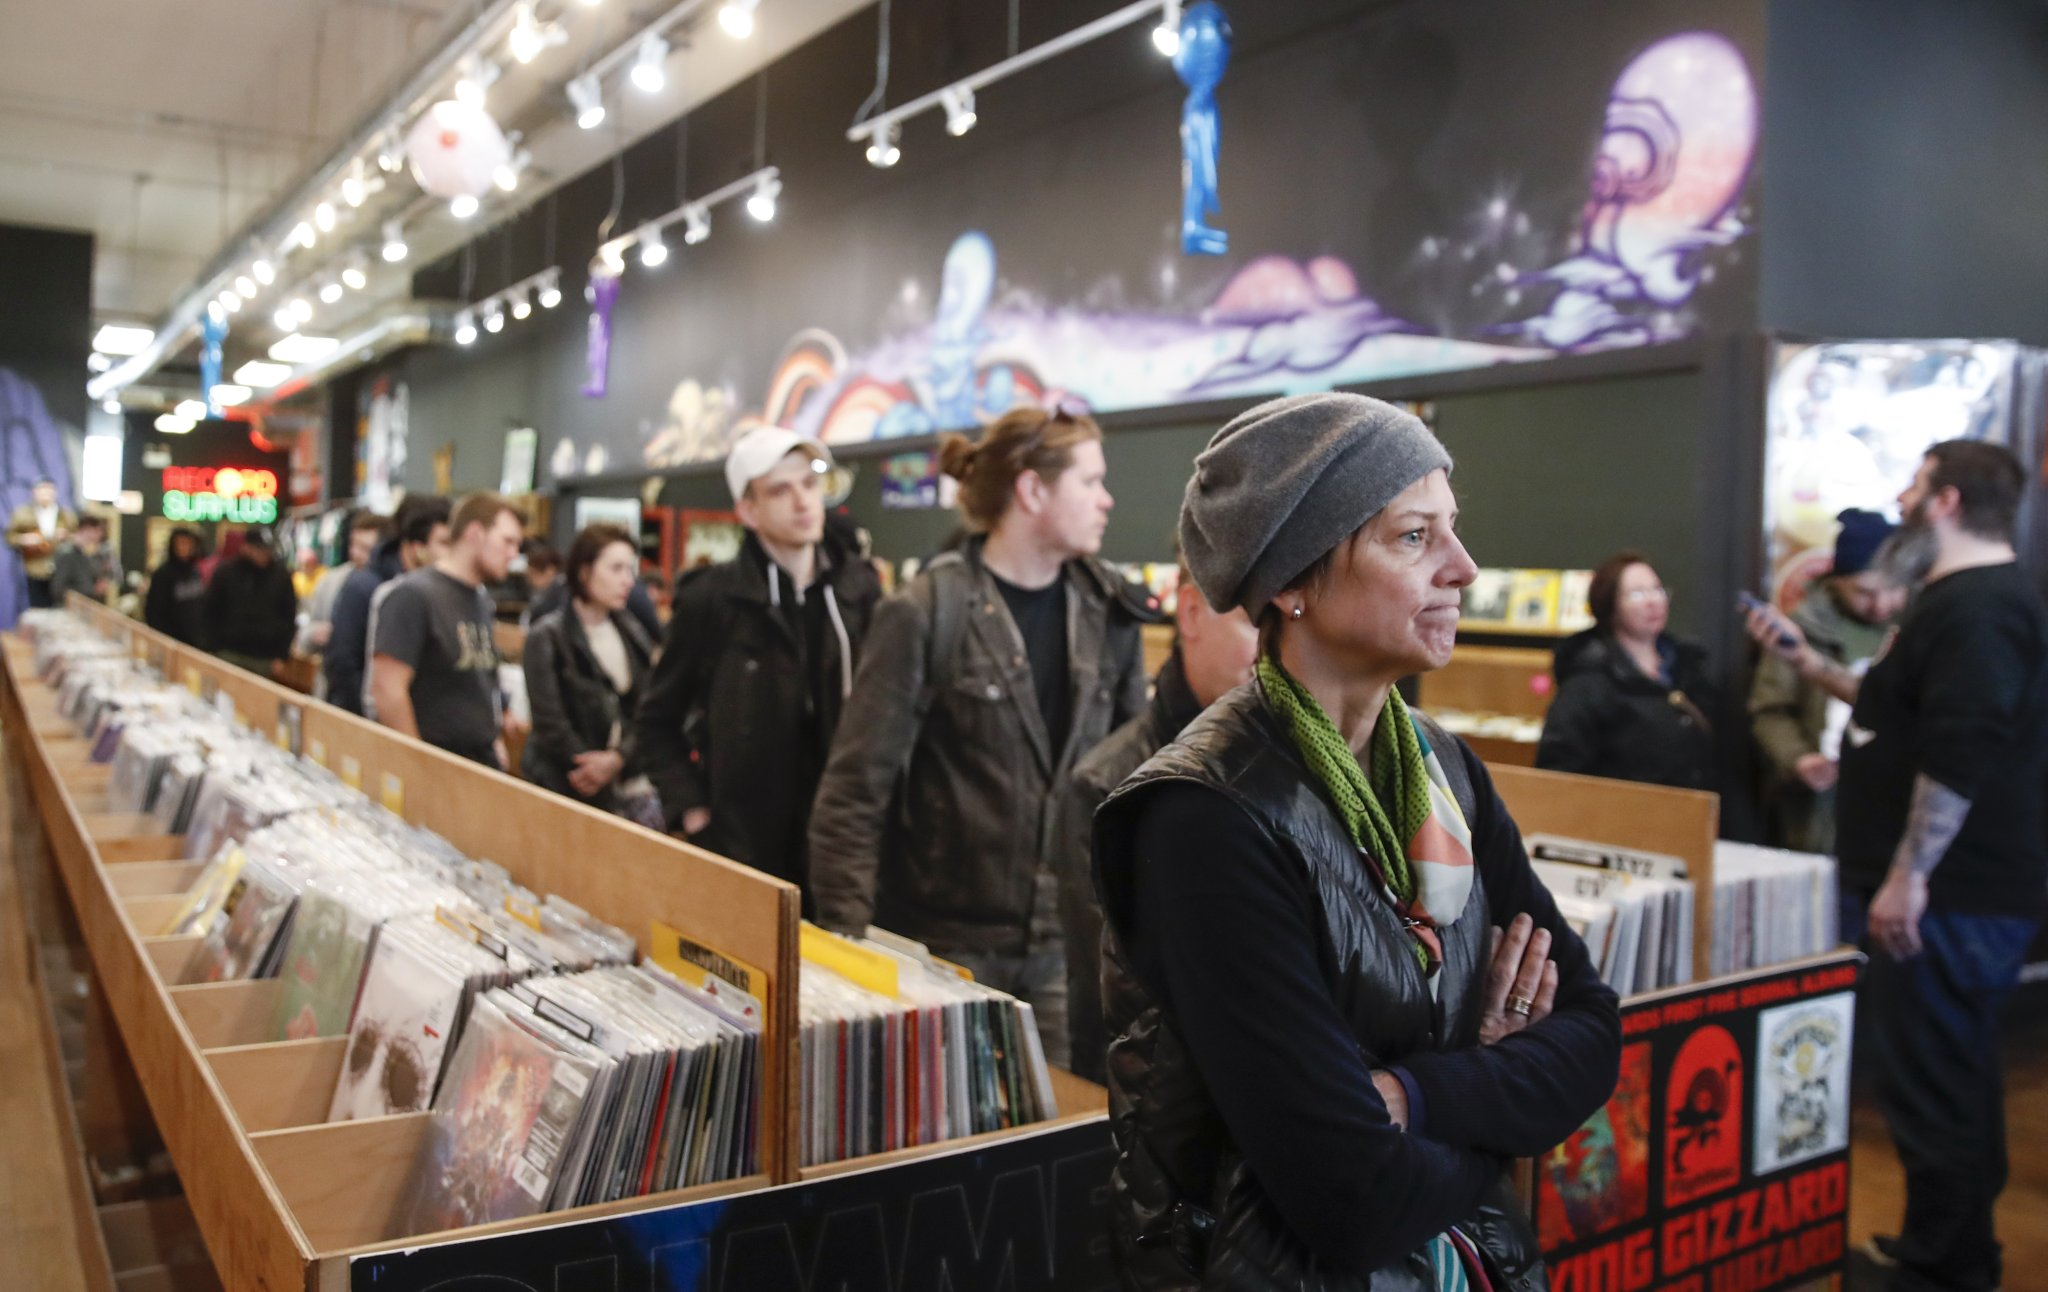 Vinyl Outsells CDs for the First Time in 35 Years